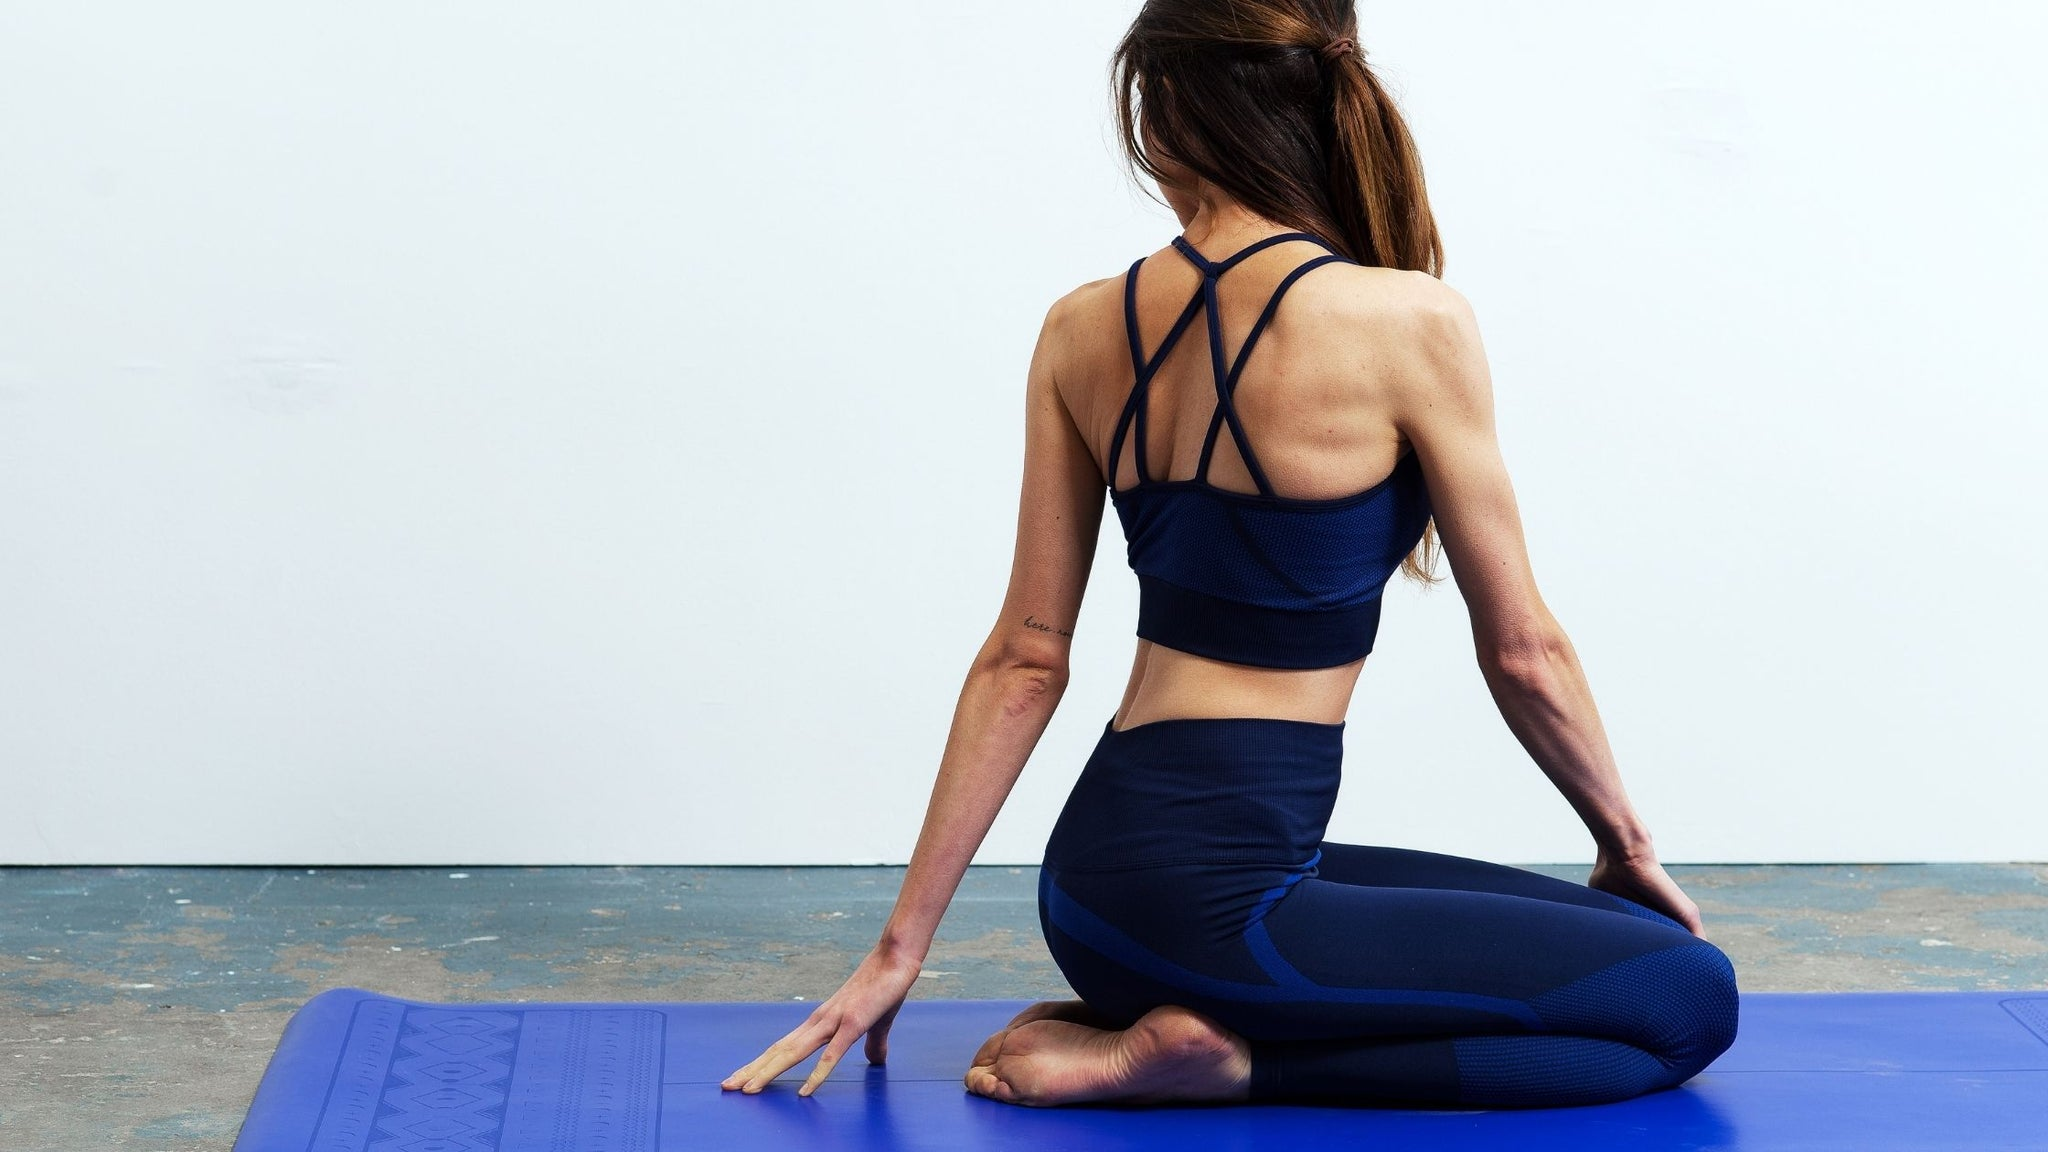 How to Get A Better Posture With Yoga: 5 Best Poses